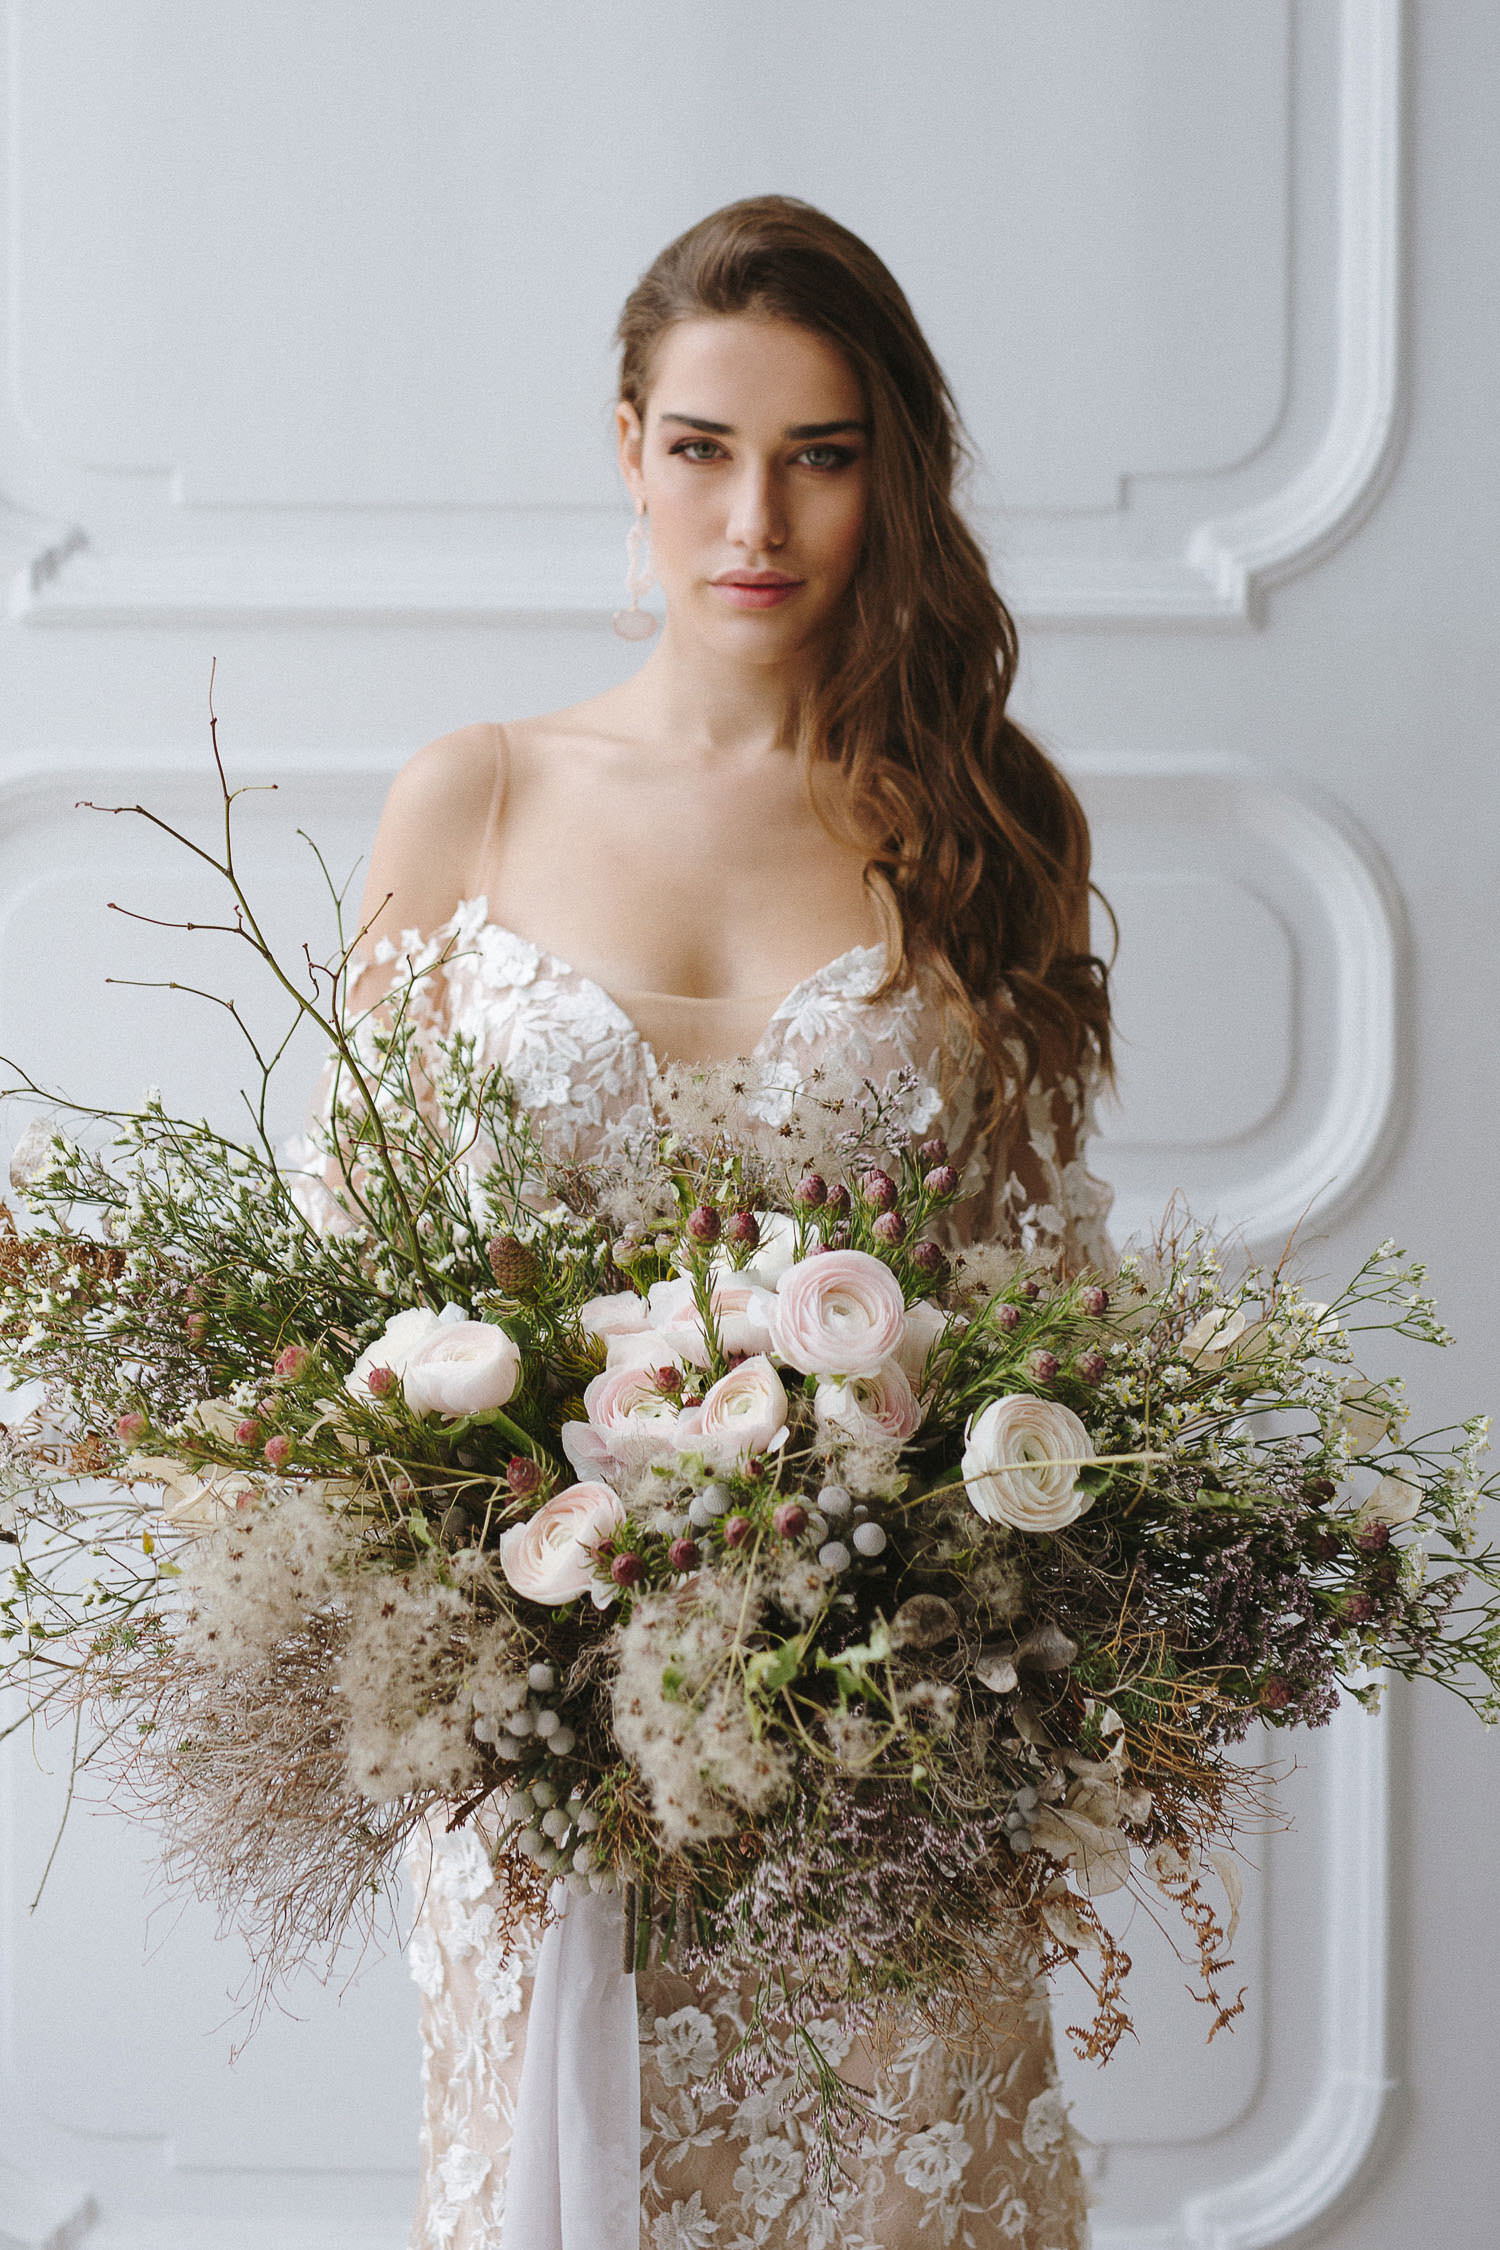 Gorgeous elegant bride wearing a stunning Tara Lauren dress. The botanical bouquet by Figli dei Fiori, Como | Photo: Camilla Anchisi Lake Como wedding photographer